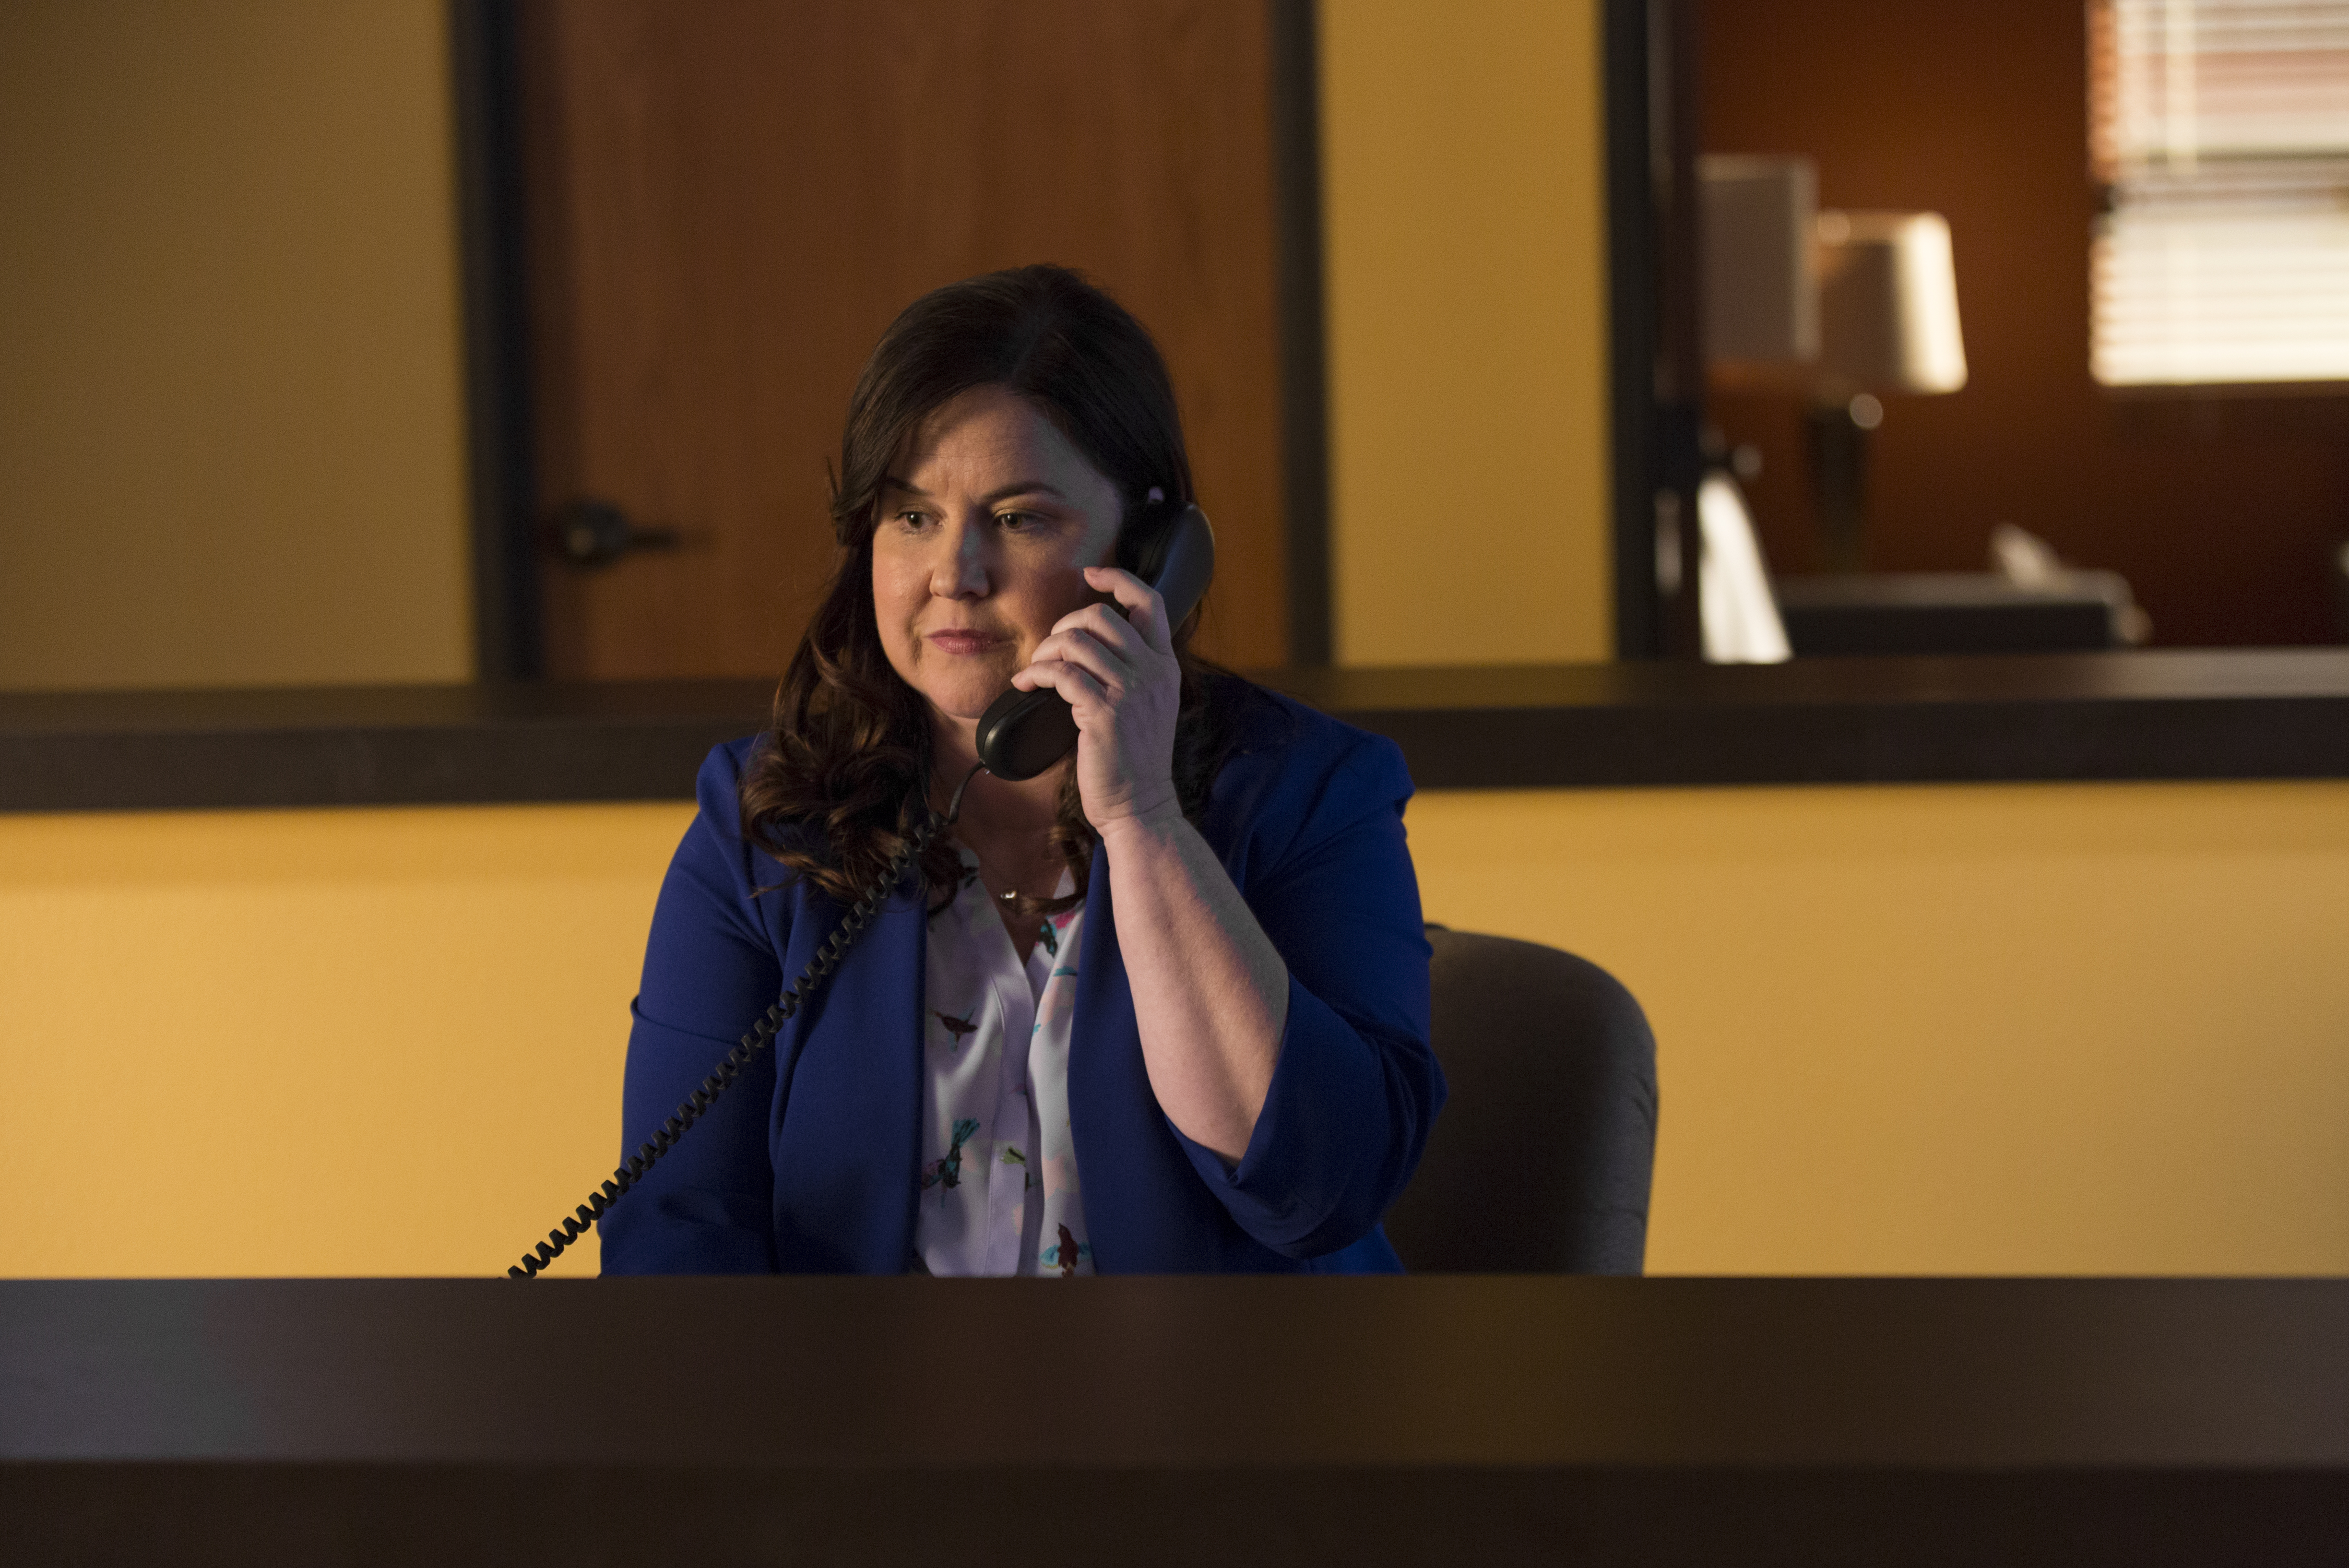 Tina Parker in Better Call Saul (2015)